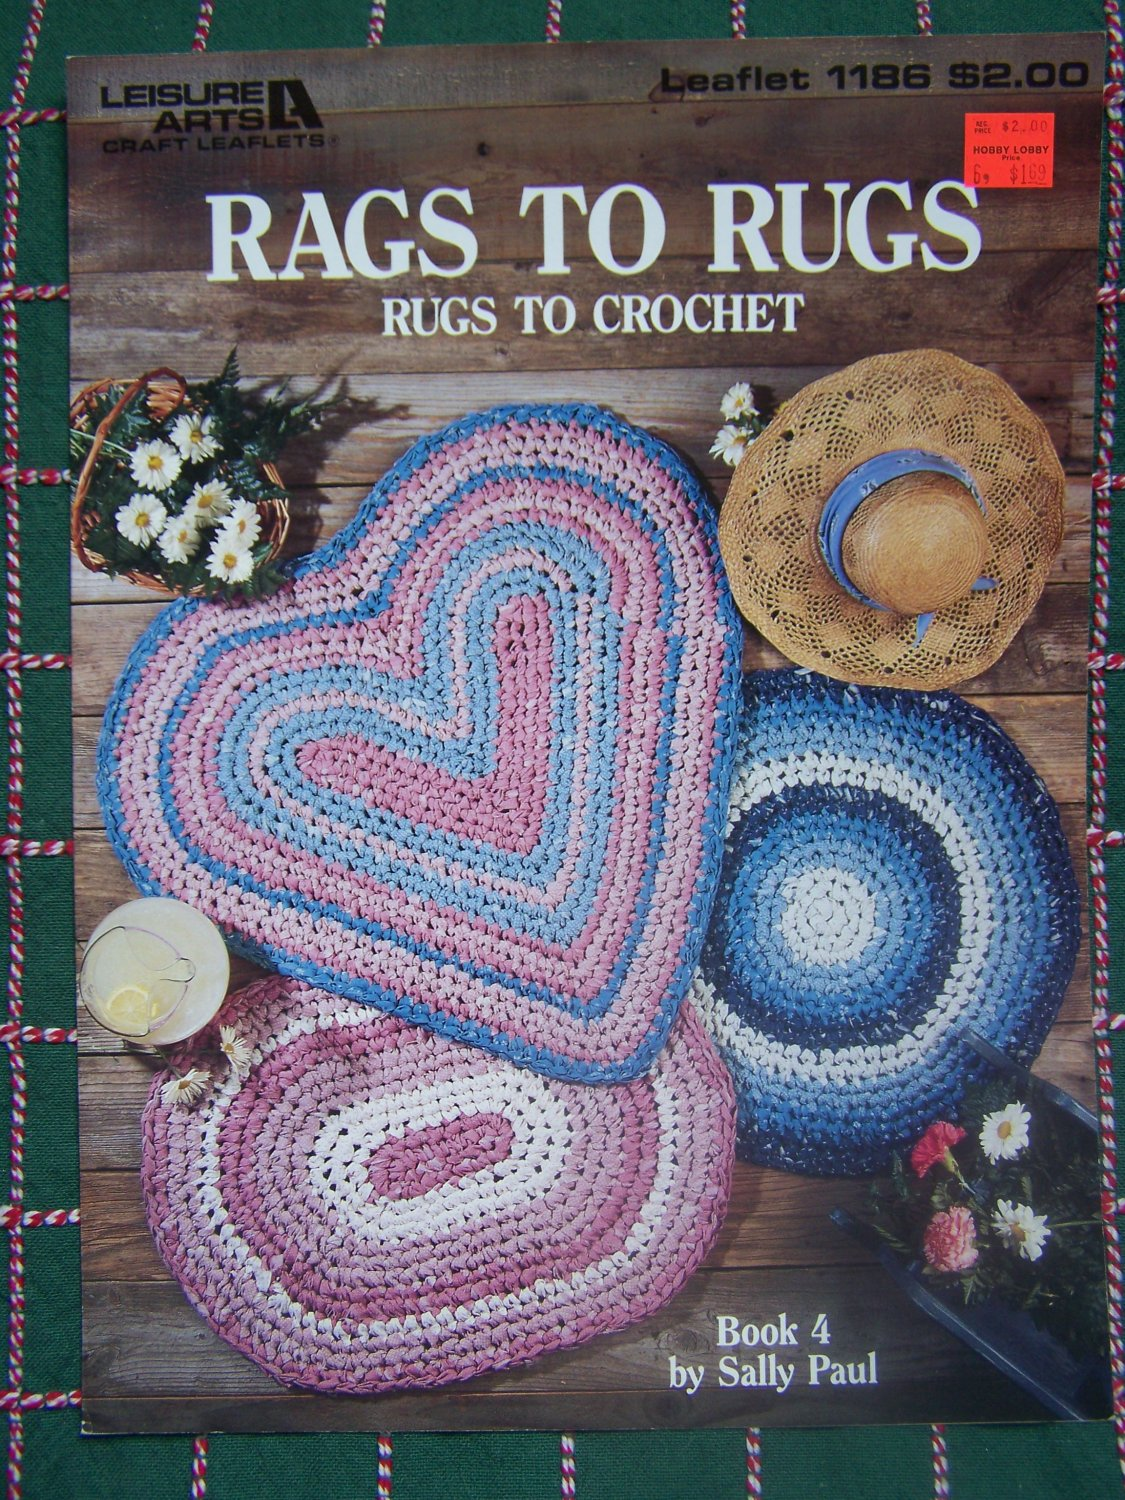 Vintage Rag Fabric Crochet Rug Patterns 3 Rag Rugs Heart Oval Round